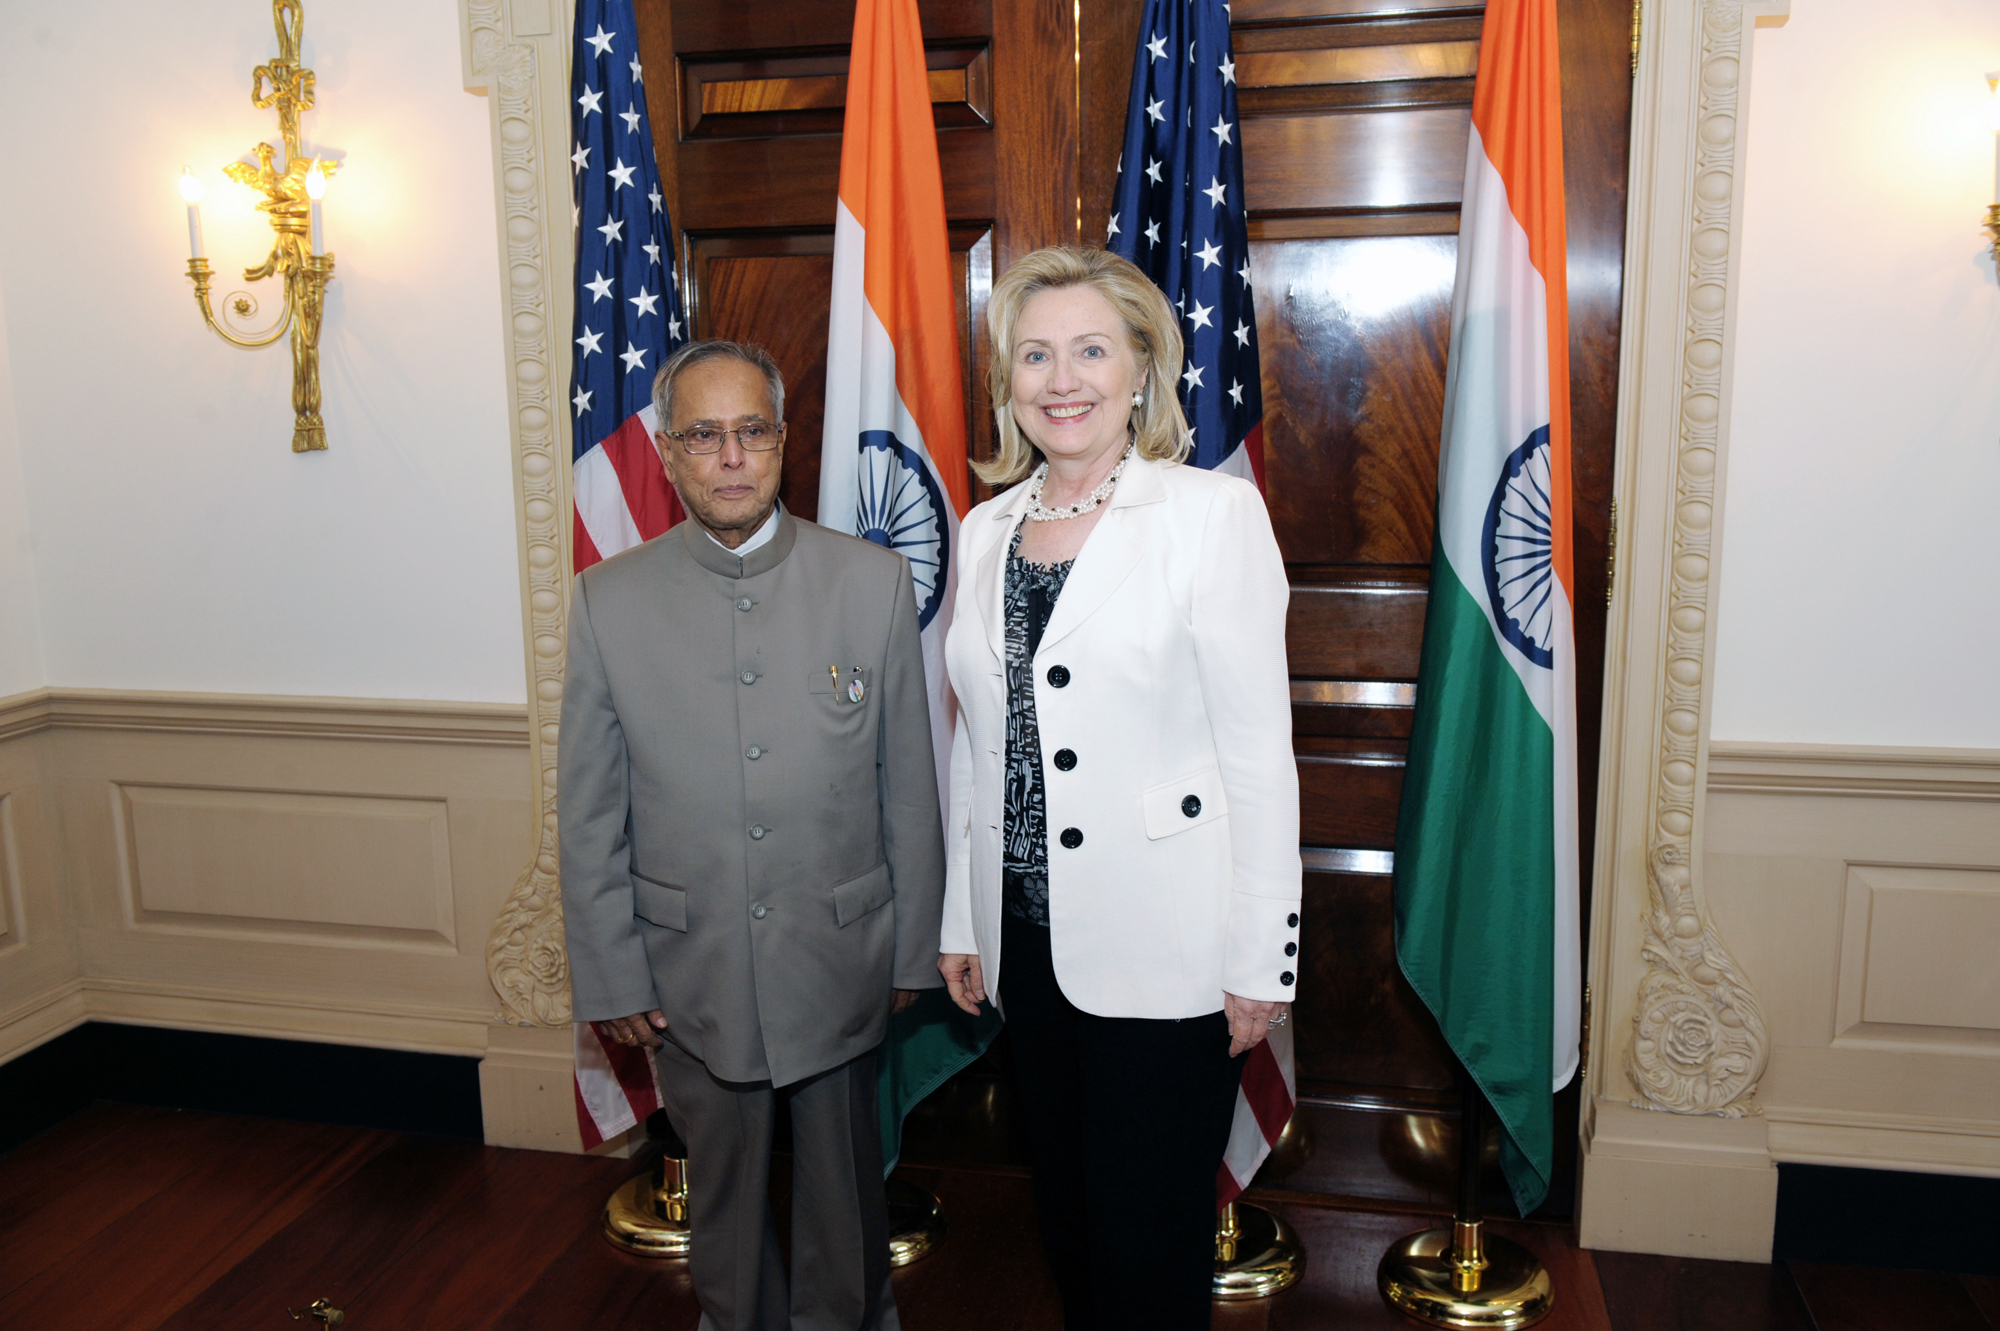 FileIndian Finance Minister Pranab Mukherjee With US Secretary Of - How tall is hillary clinton